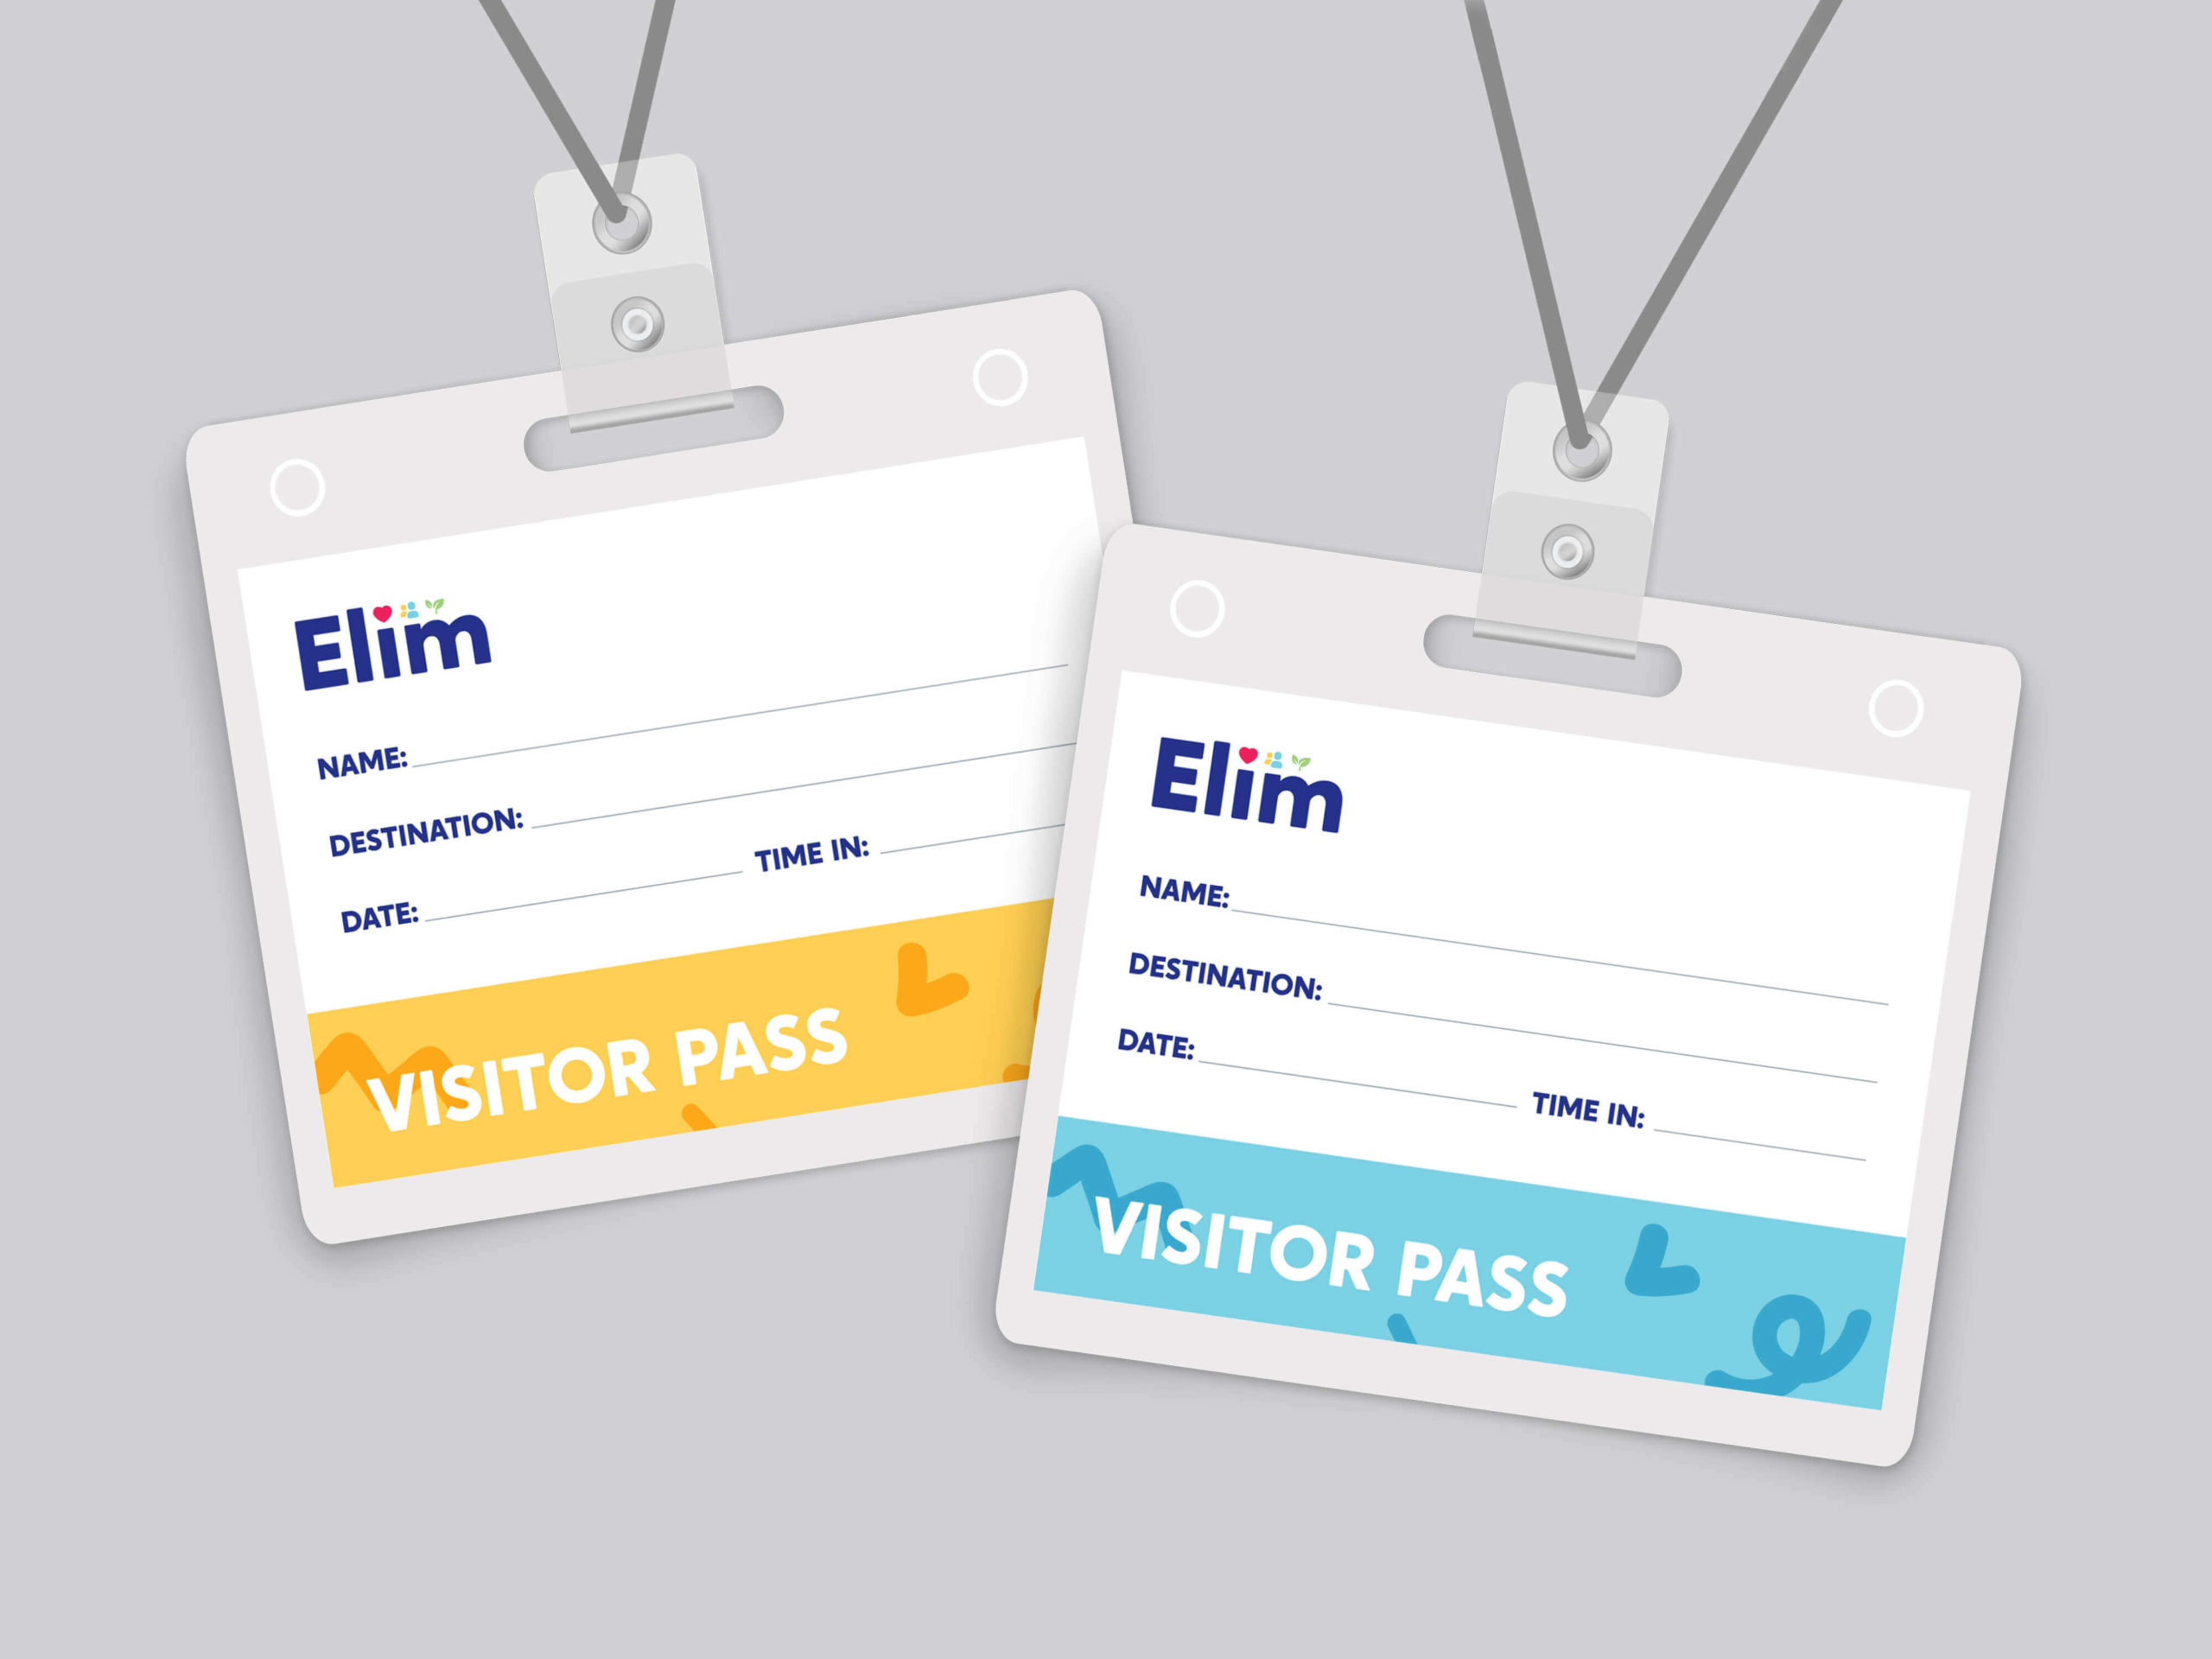 Elim Brand Design - Creating an energetic identity to show how people with disabilities can thrive.